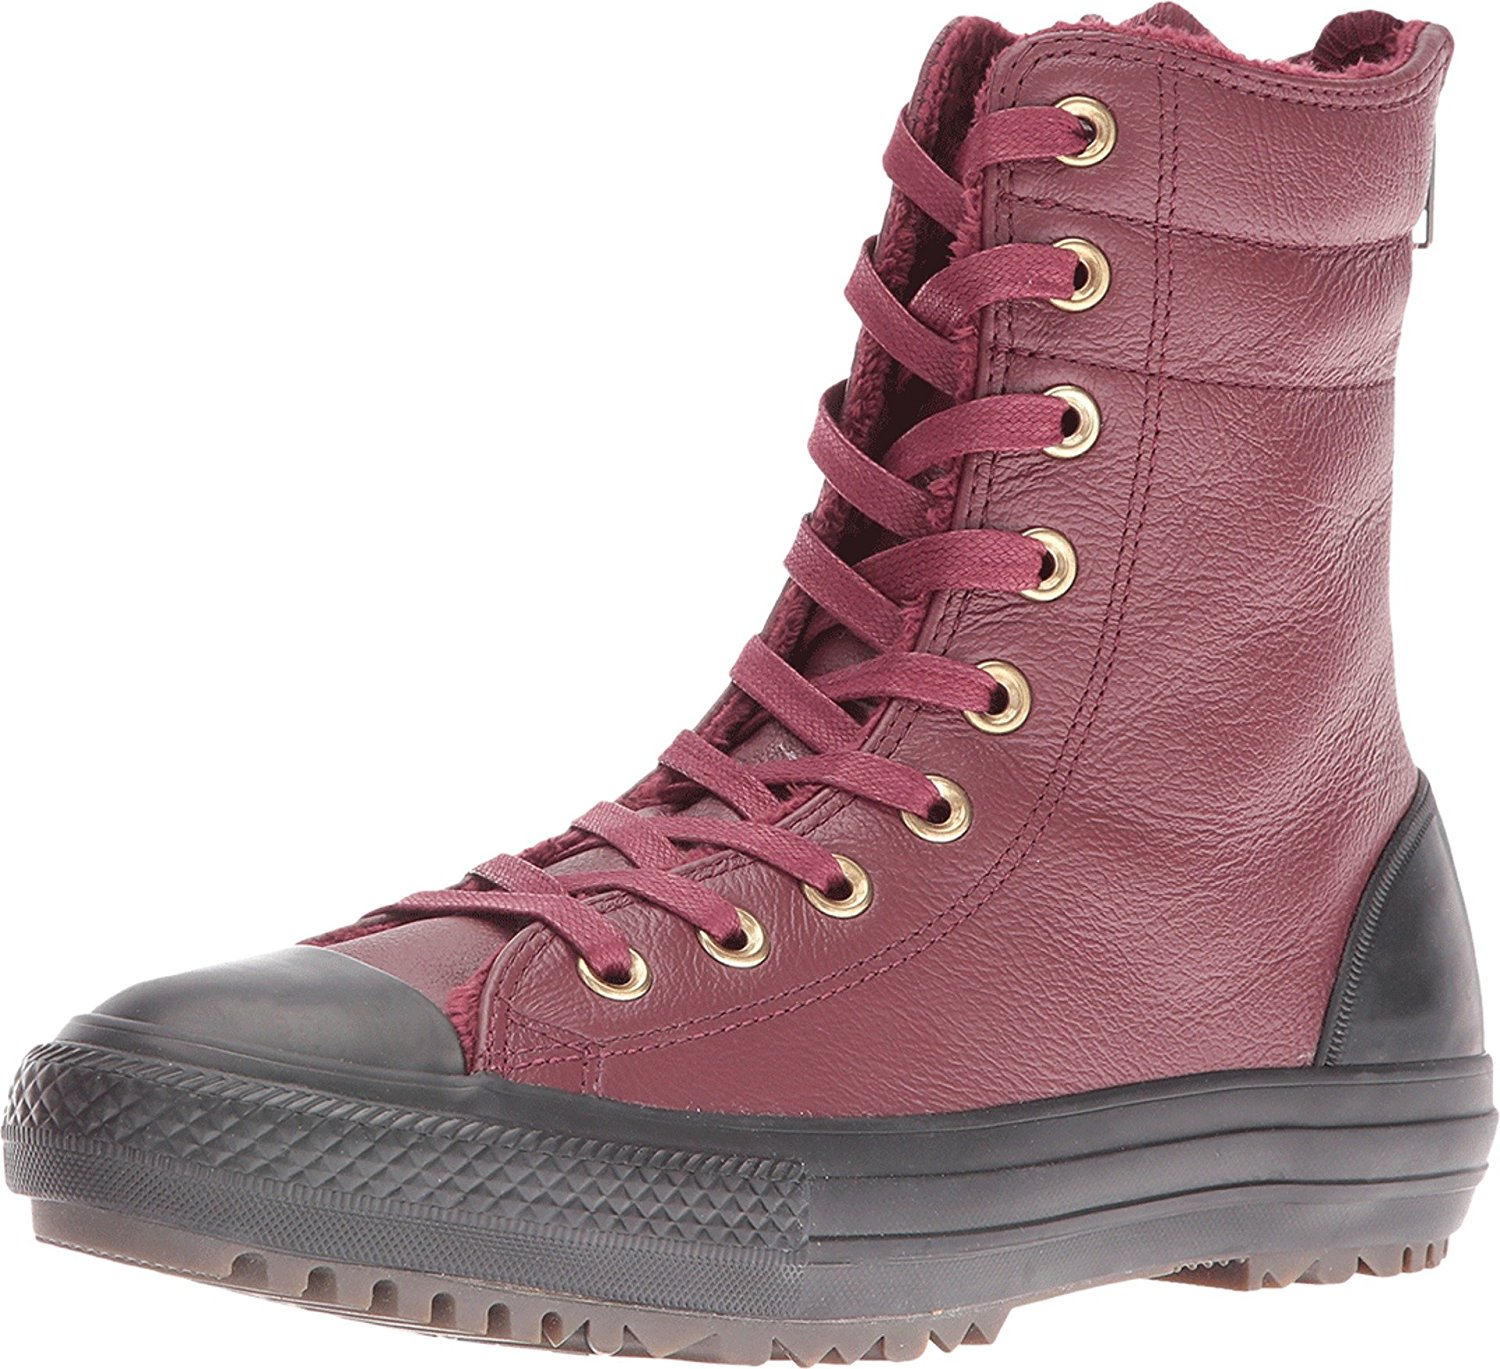 51ad88d3d58330 Get Quotations · Converse Womens Chuck Taylor All Star Leather + Fur  Hi-Rise Boot XHi